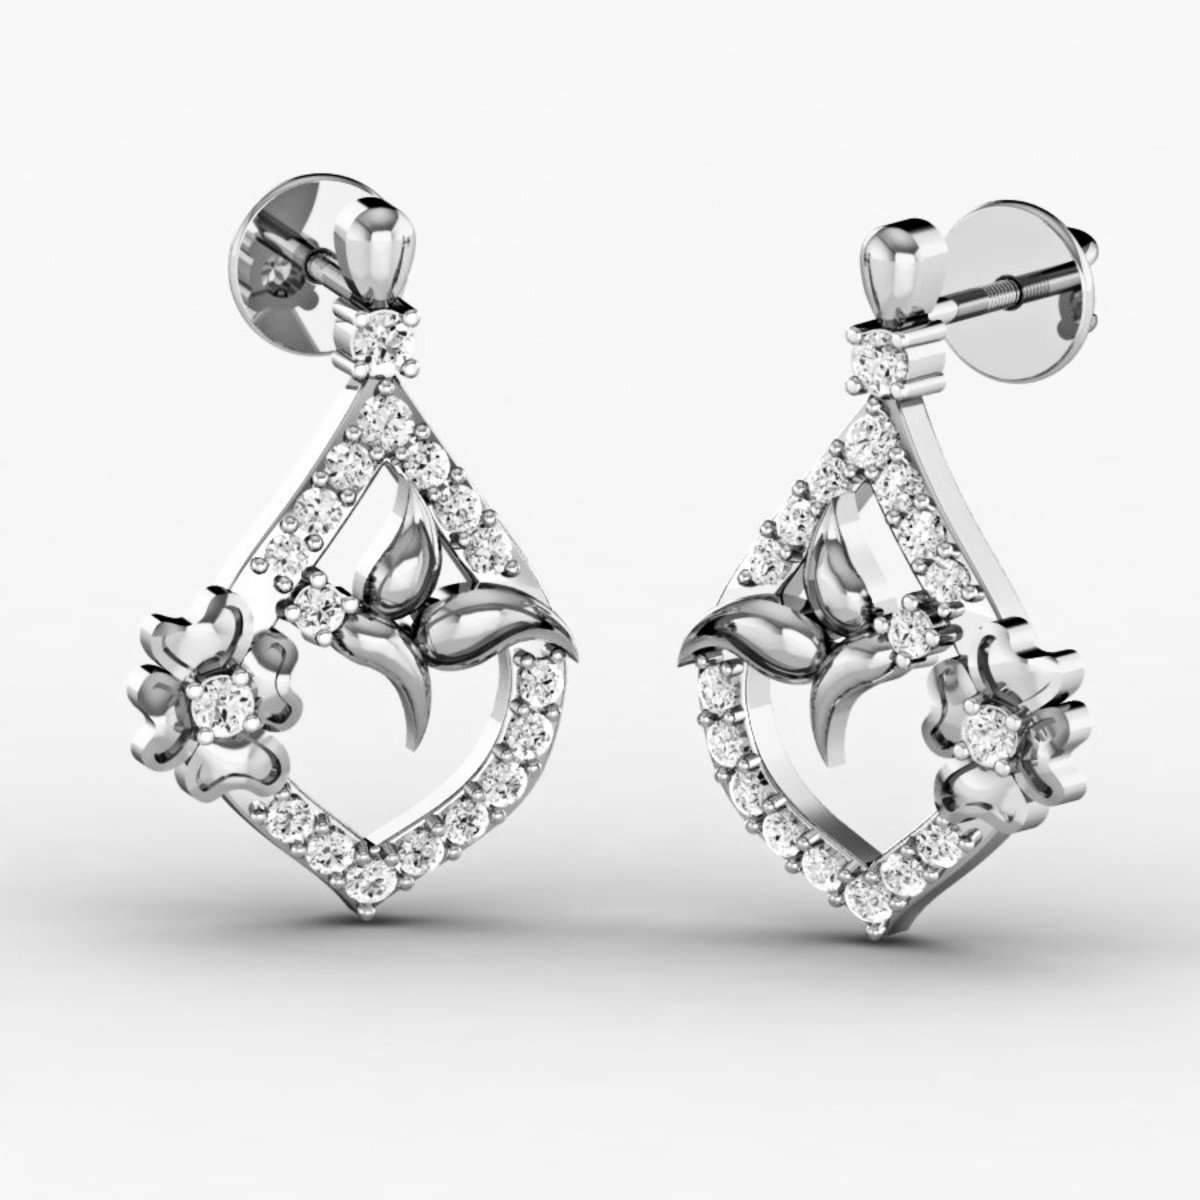 Diamoire Jewels Botanic 18kt White Gold Diamond Stud Earrings